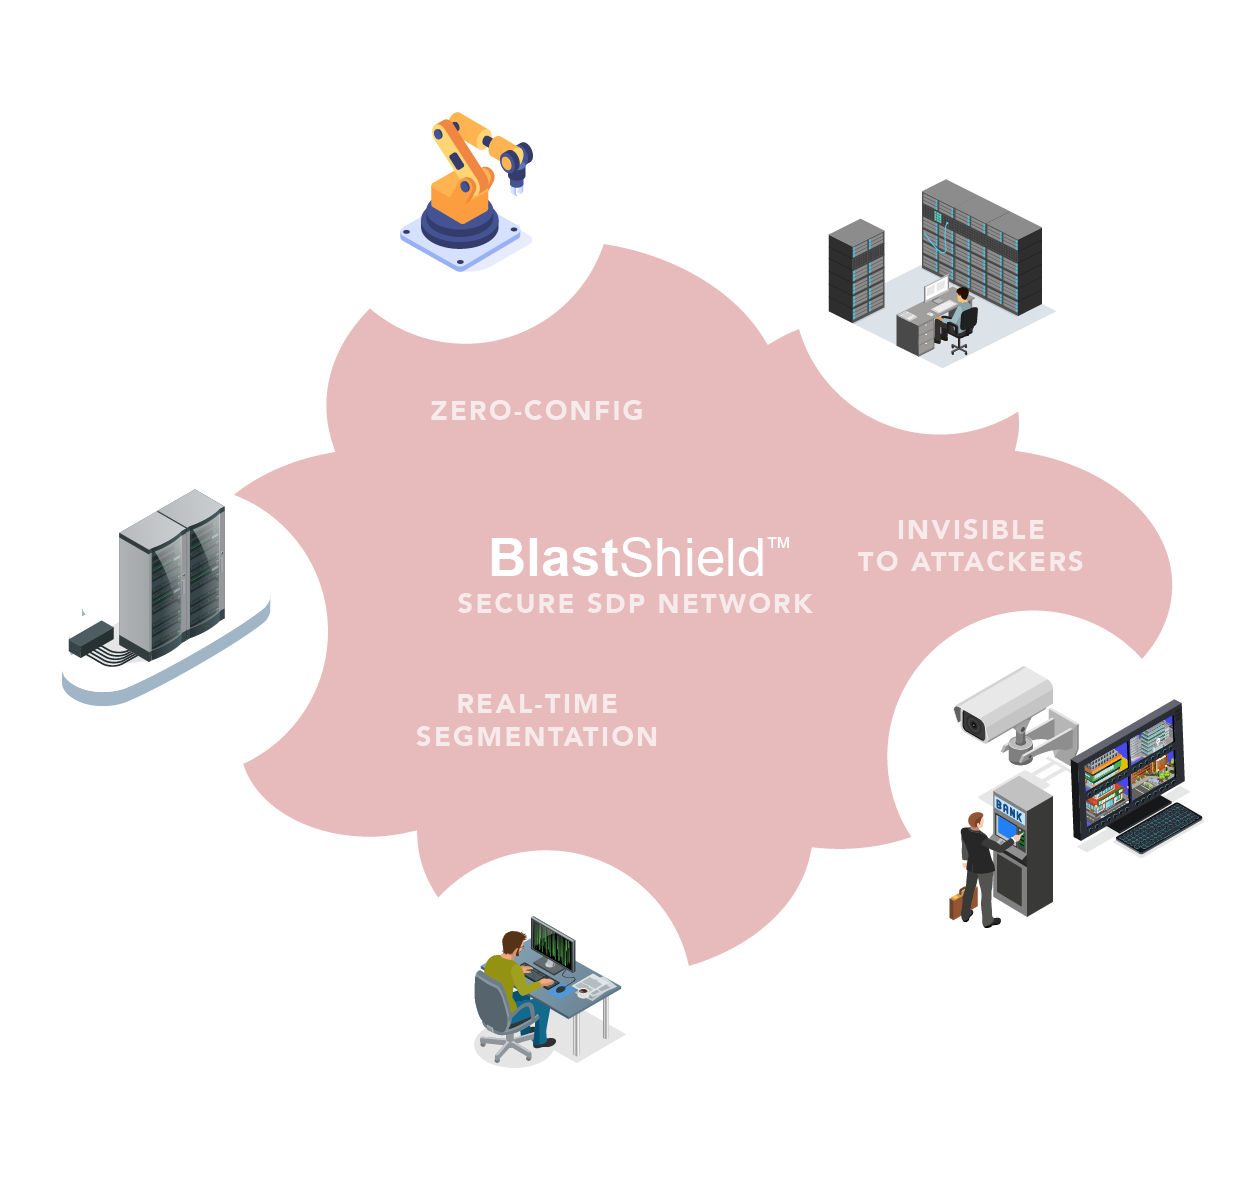 A chart showing the capabilities of the BlastShield™ software-defined VPN.